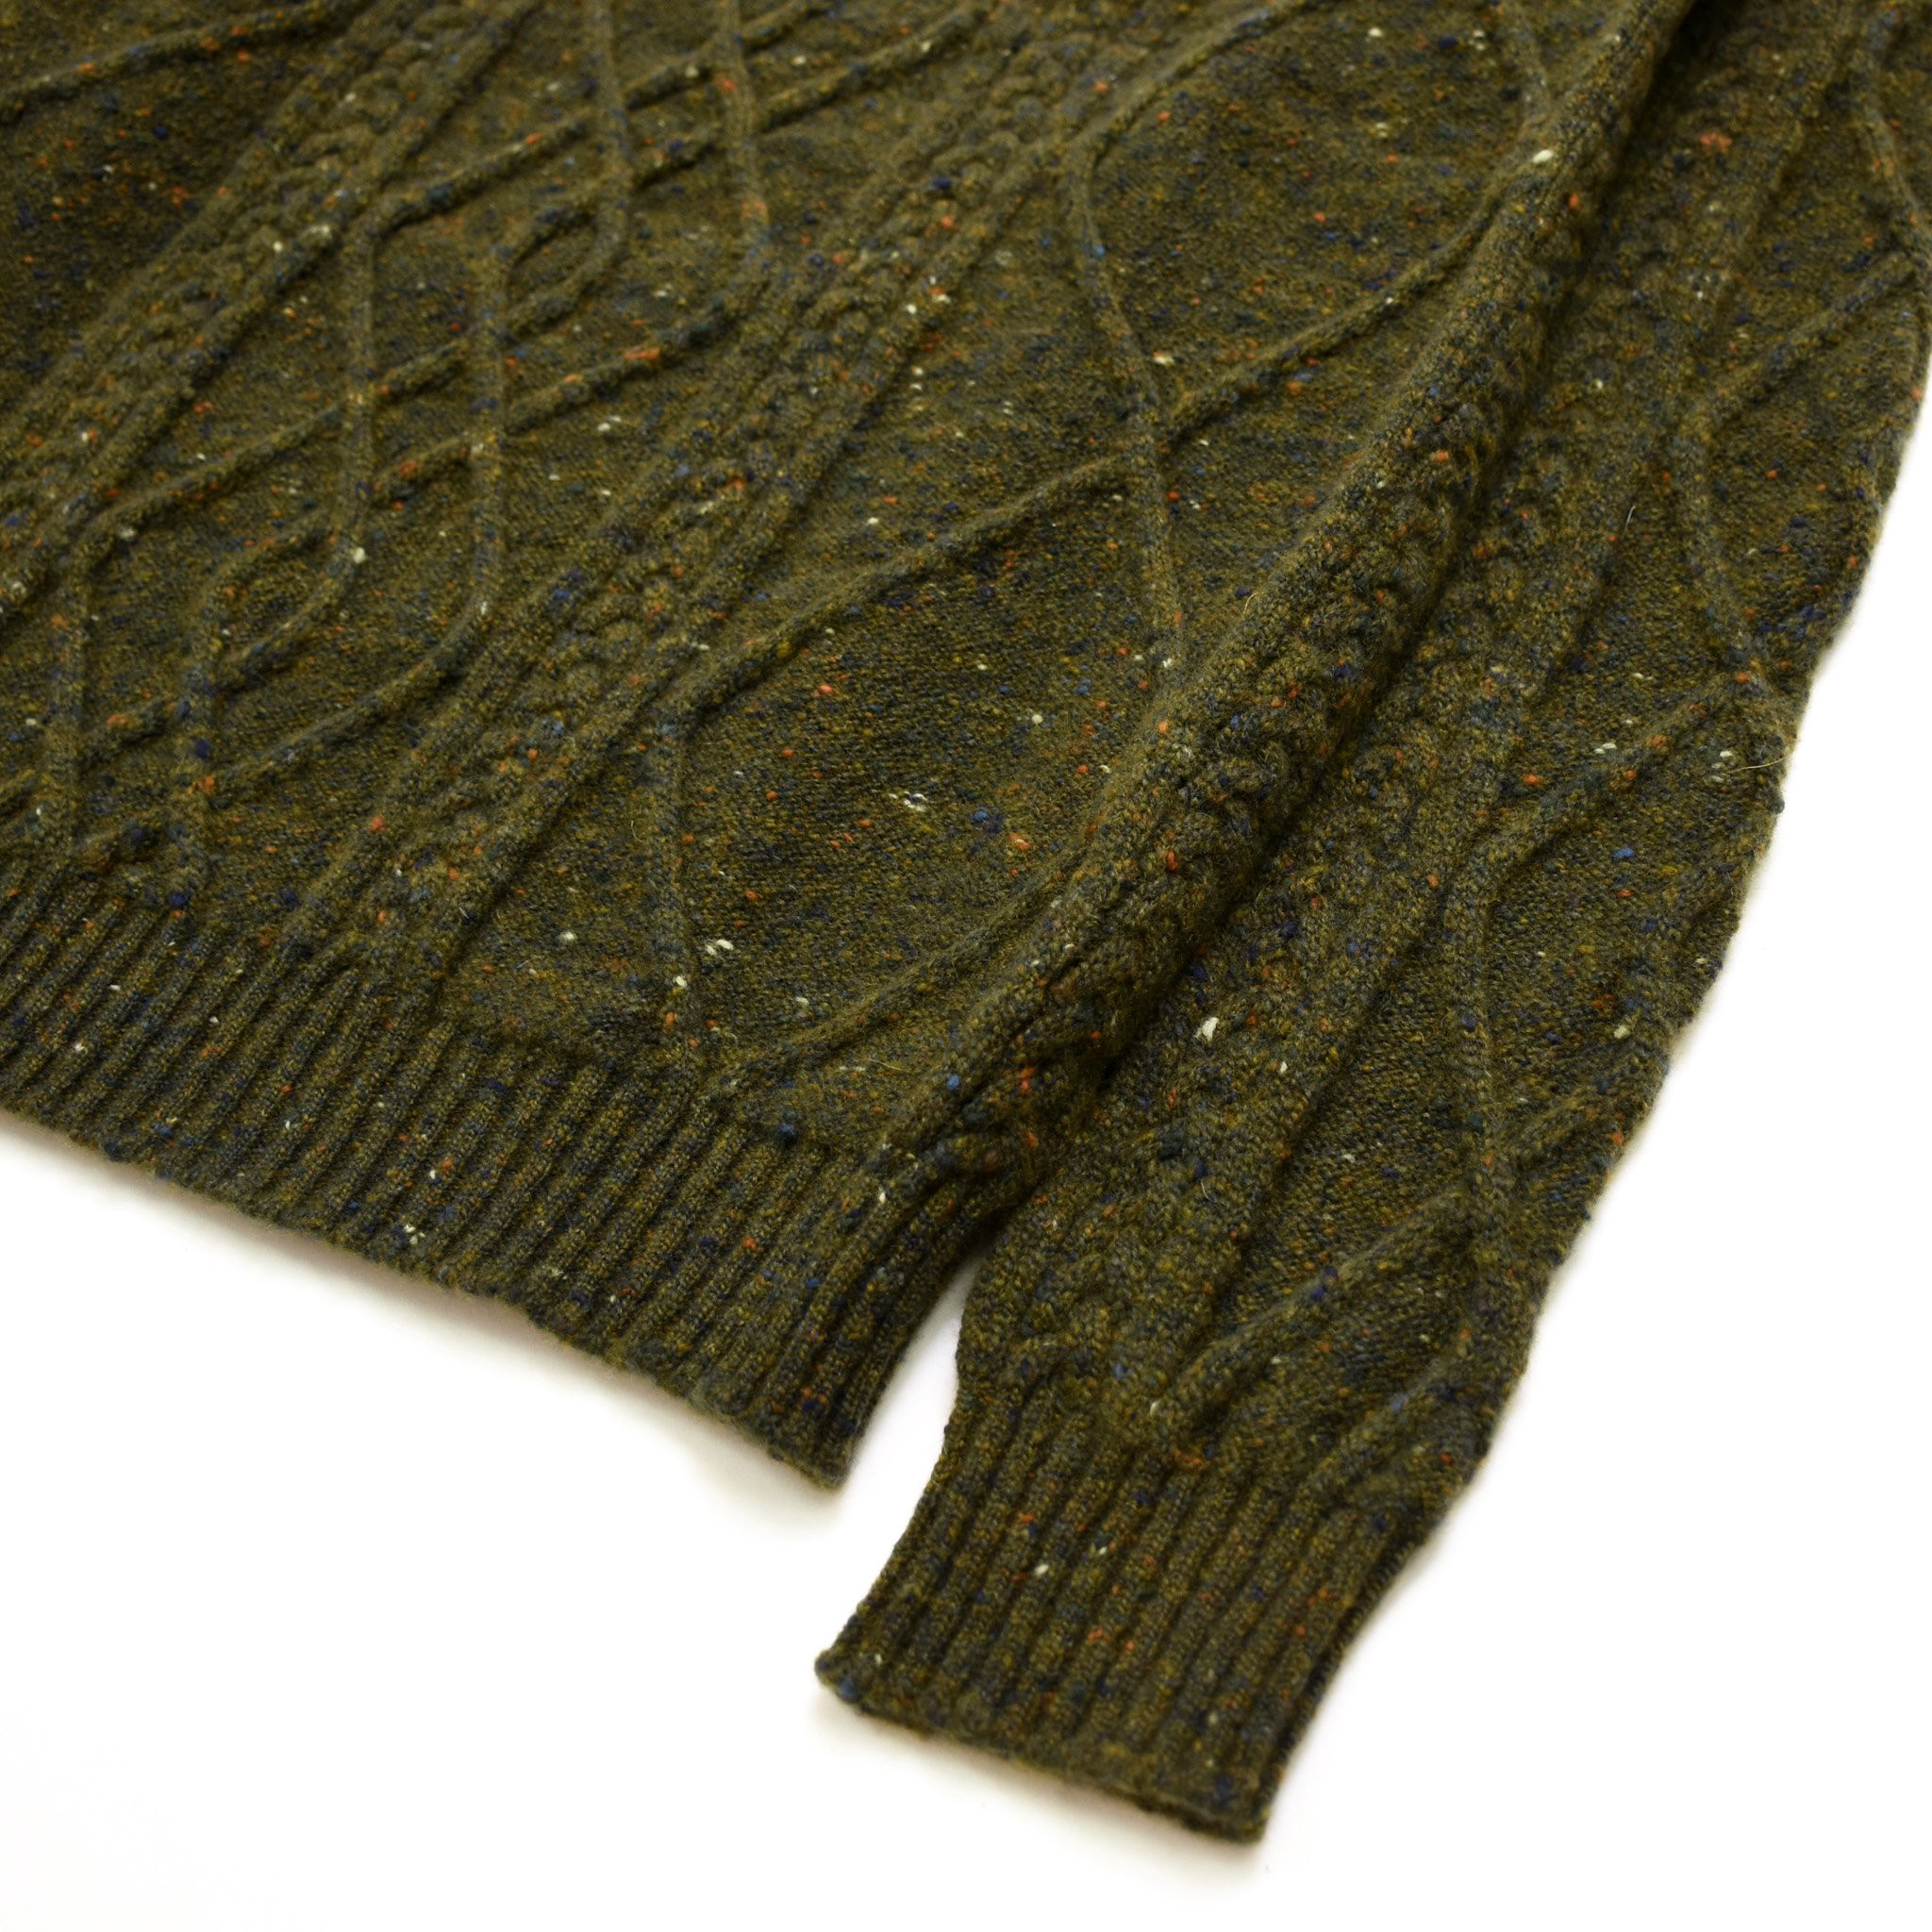 301c47b111e6 Fisherman Sweater in Cashmere Blend Donegal Tweed by American Trench ...